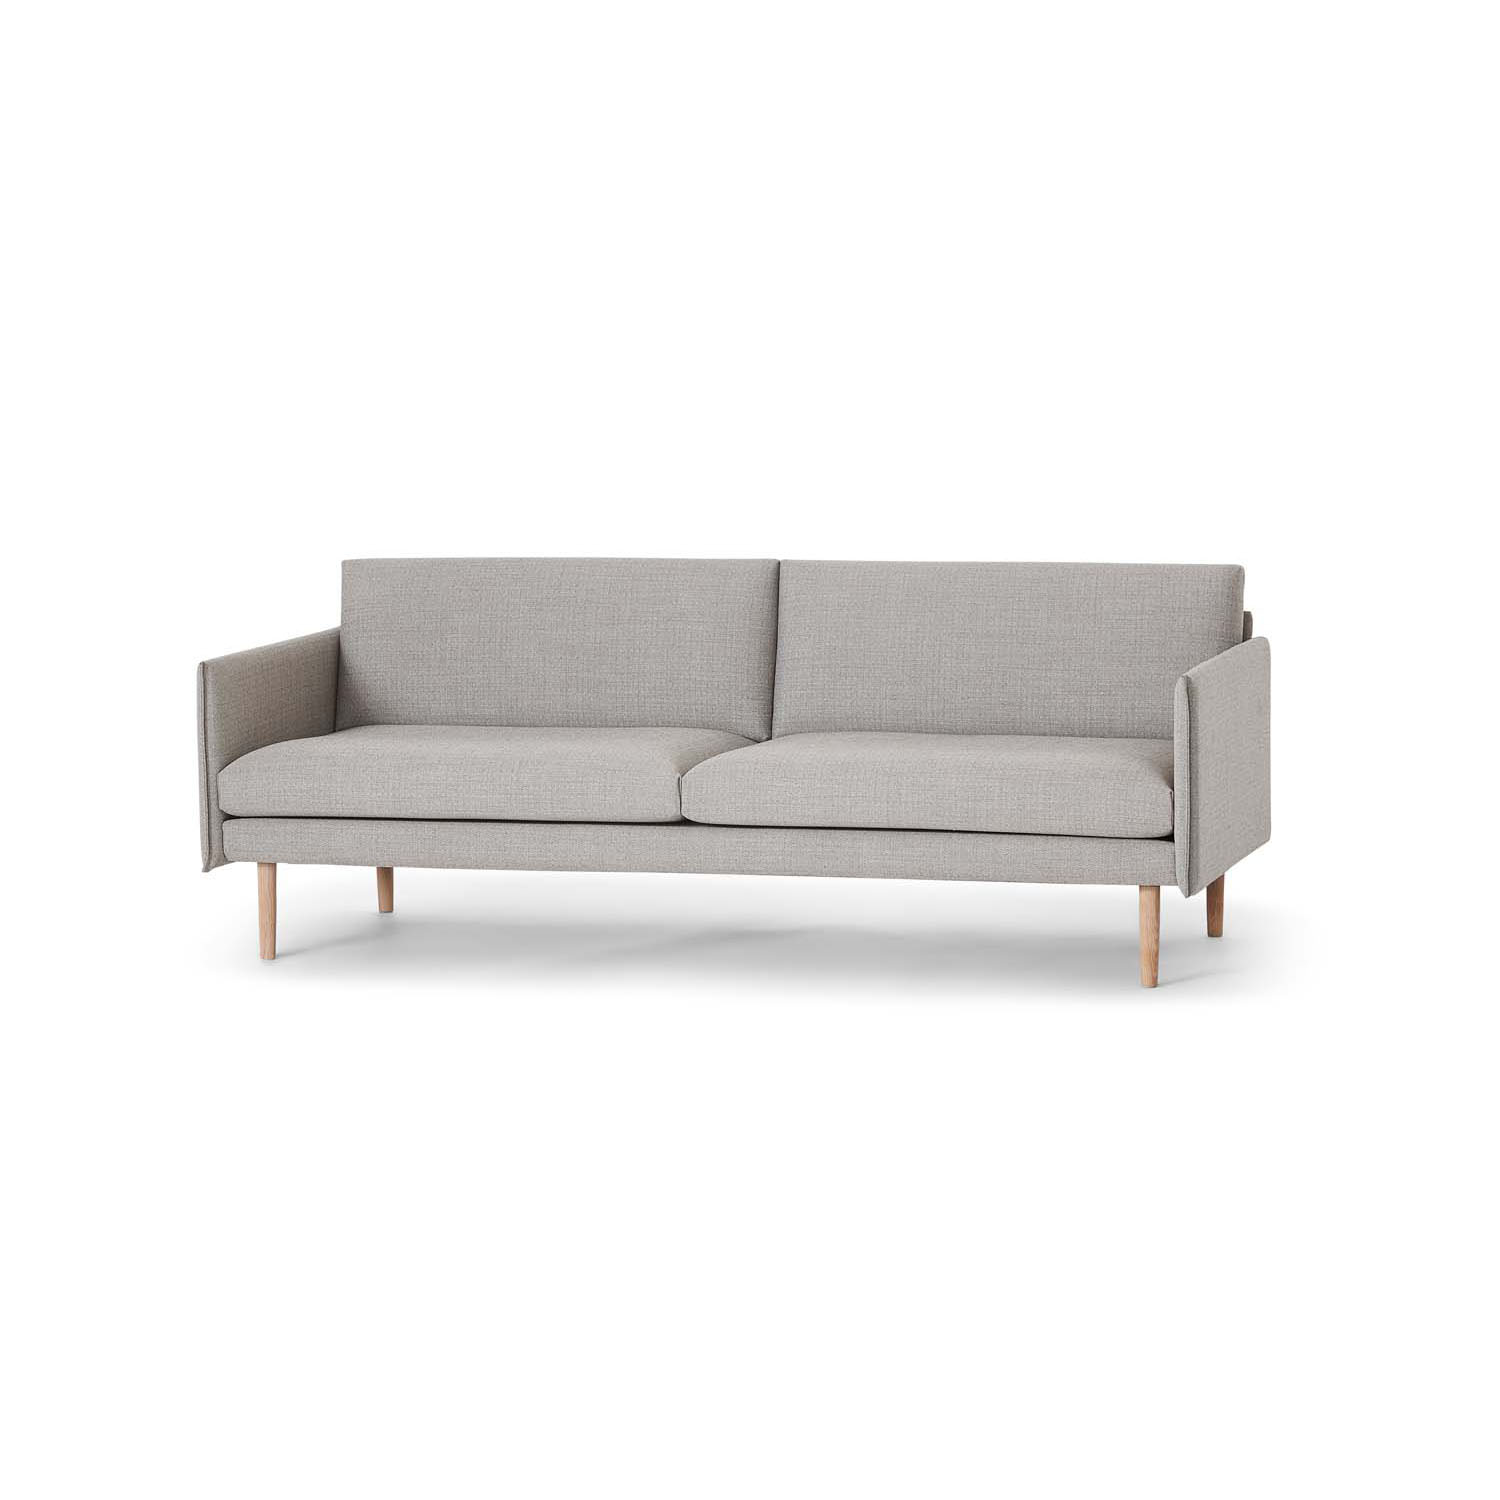 one and half seater sofa tradional sofas form seating 1 2 3 icons of